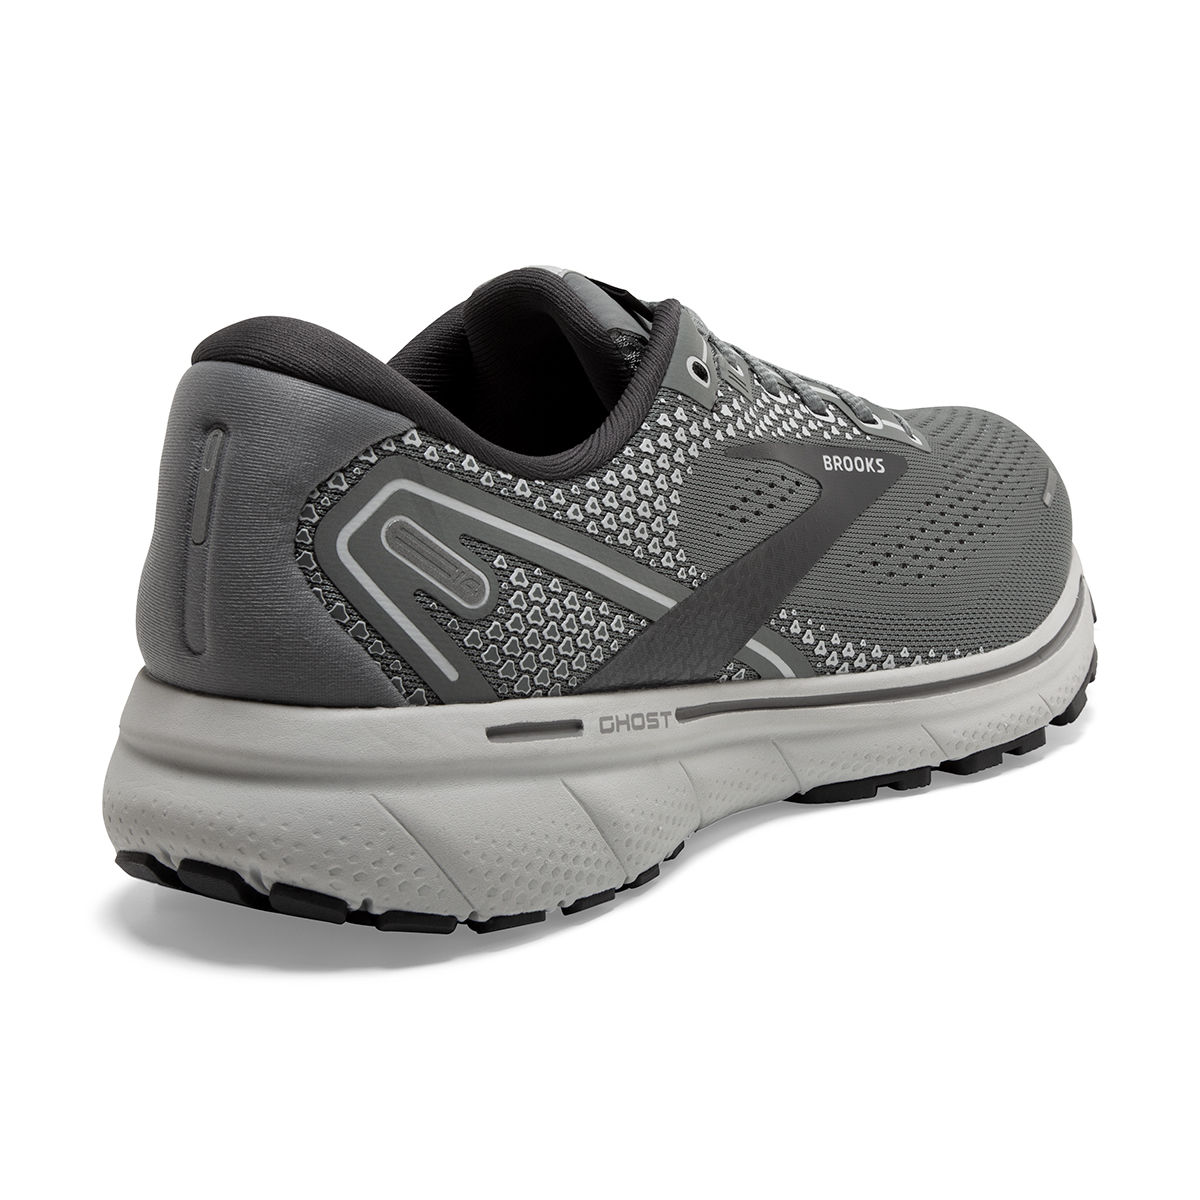 Men's Brooks Ghost 14 Running Shoe - Color: Grey/Alloy/Oyster - Size: 8 - Width: Extra Wide, Grey/Alloy/Oyster, large, image 6